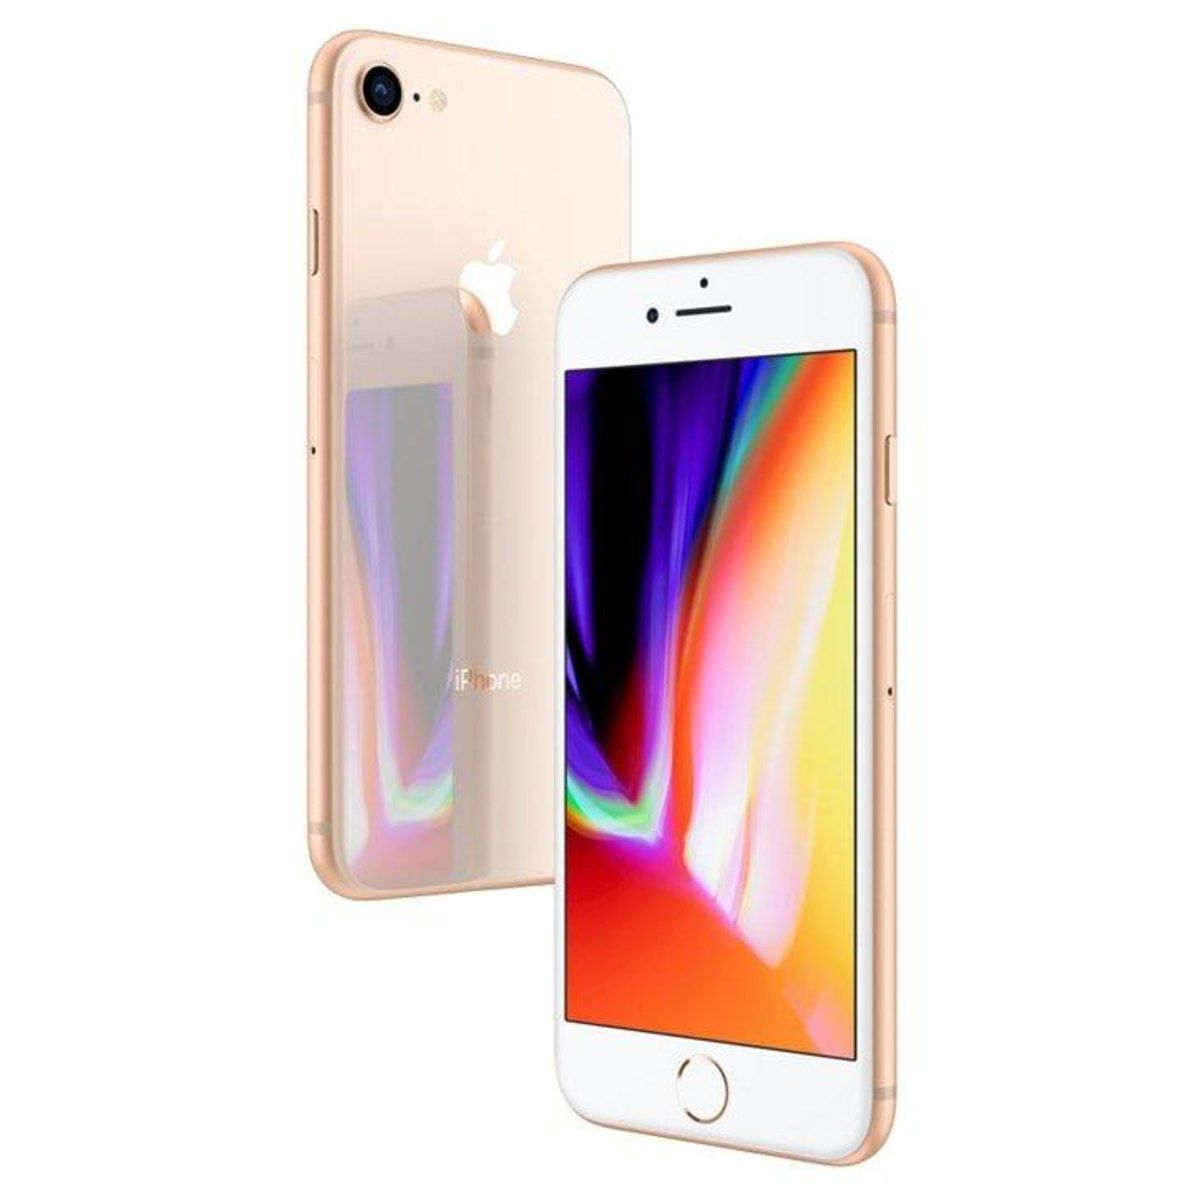 Iphone 8 Apple 256GB IOS 11 Dourado de 4.7